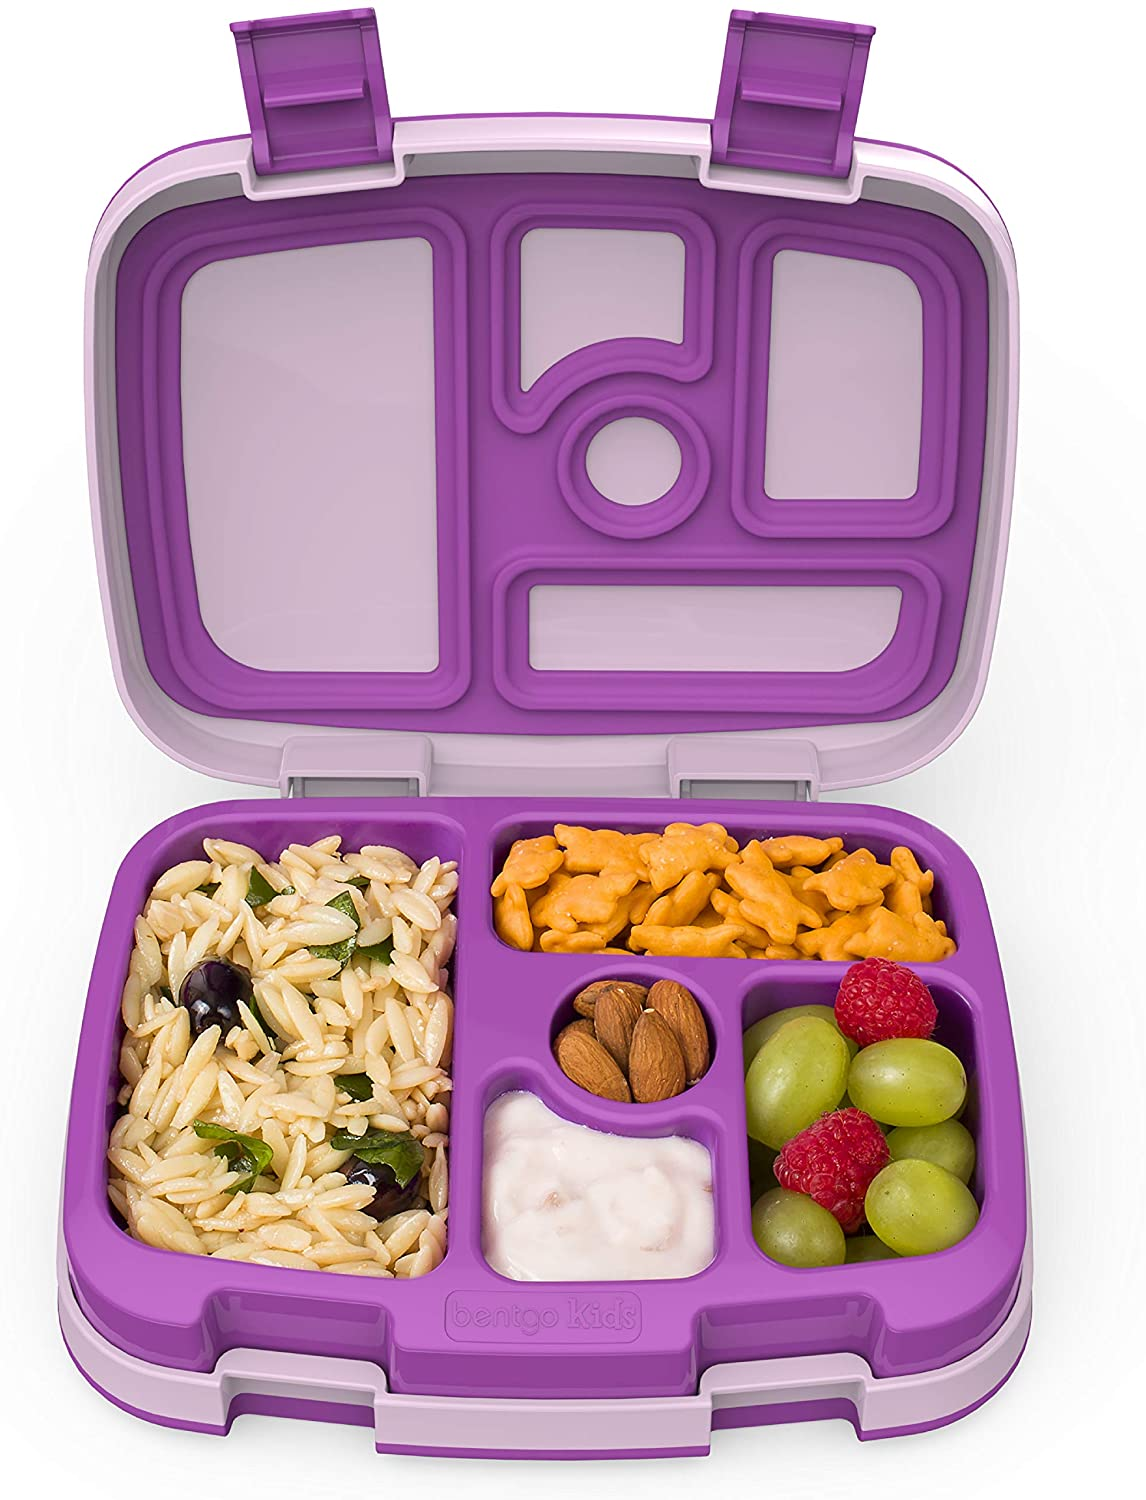 Bentgo Kids Children's Lunch Box - Leak-Proof, 5-Compartment Bento-Style Kids Lunch Box - Ideal Portion Sizes for Ages 3 to 7 - BPA-Free, Dishwasher Safe, Food-Safe Materials